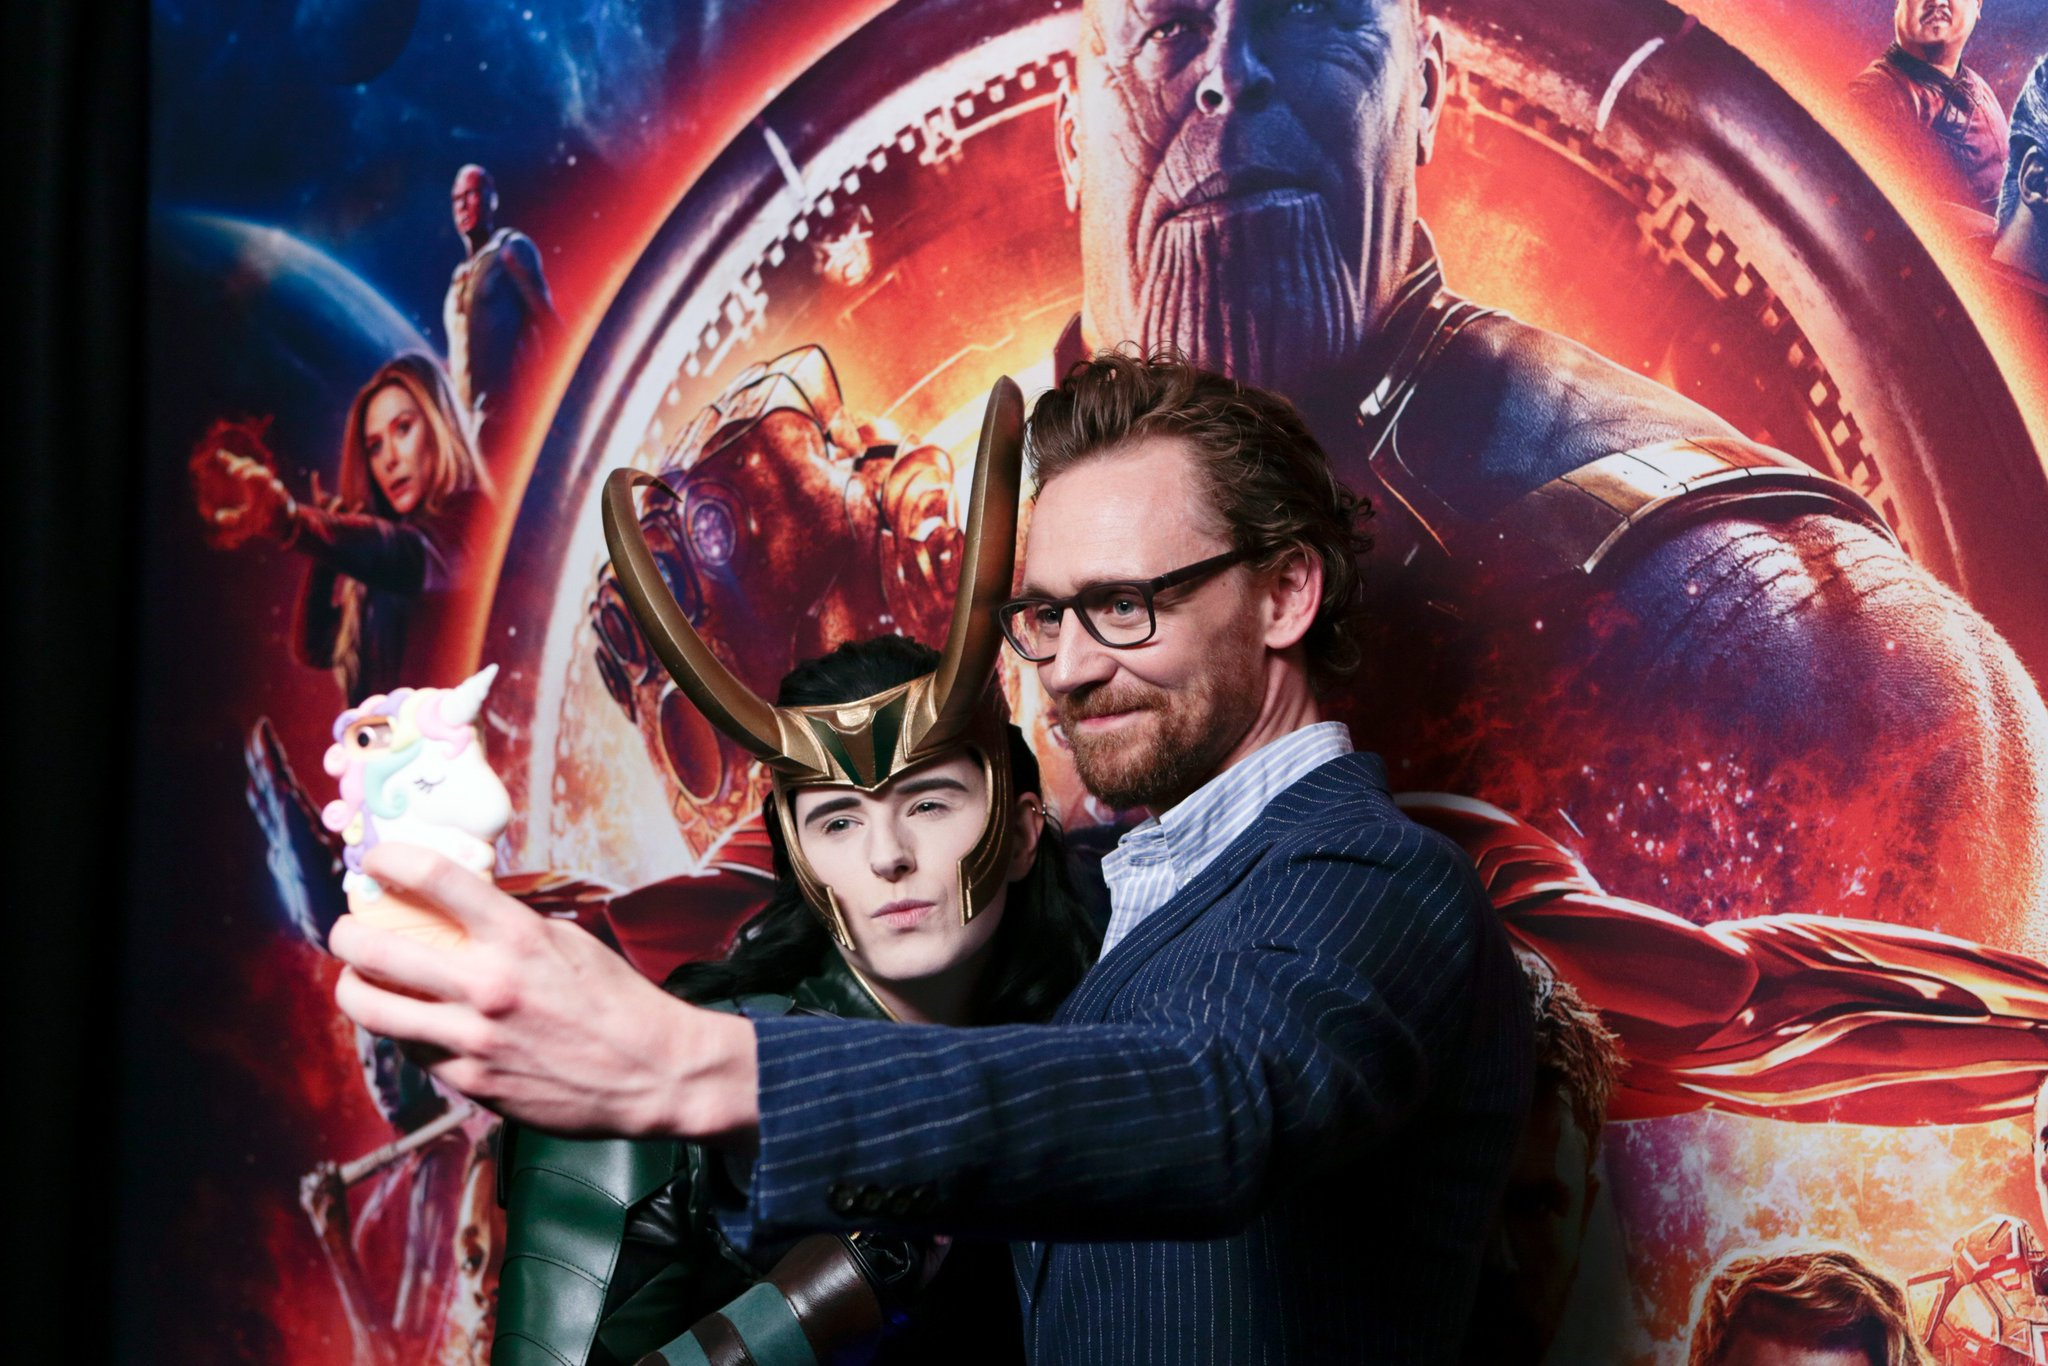 See the photos from the Marvel Studios' @Avengers: #InfinityWar red carpet fan event in London! (2/3) https://t.co/aSTQt846YB